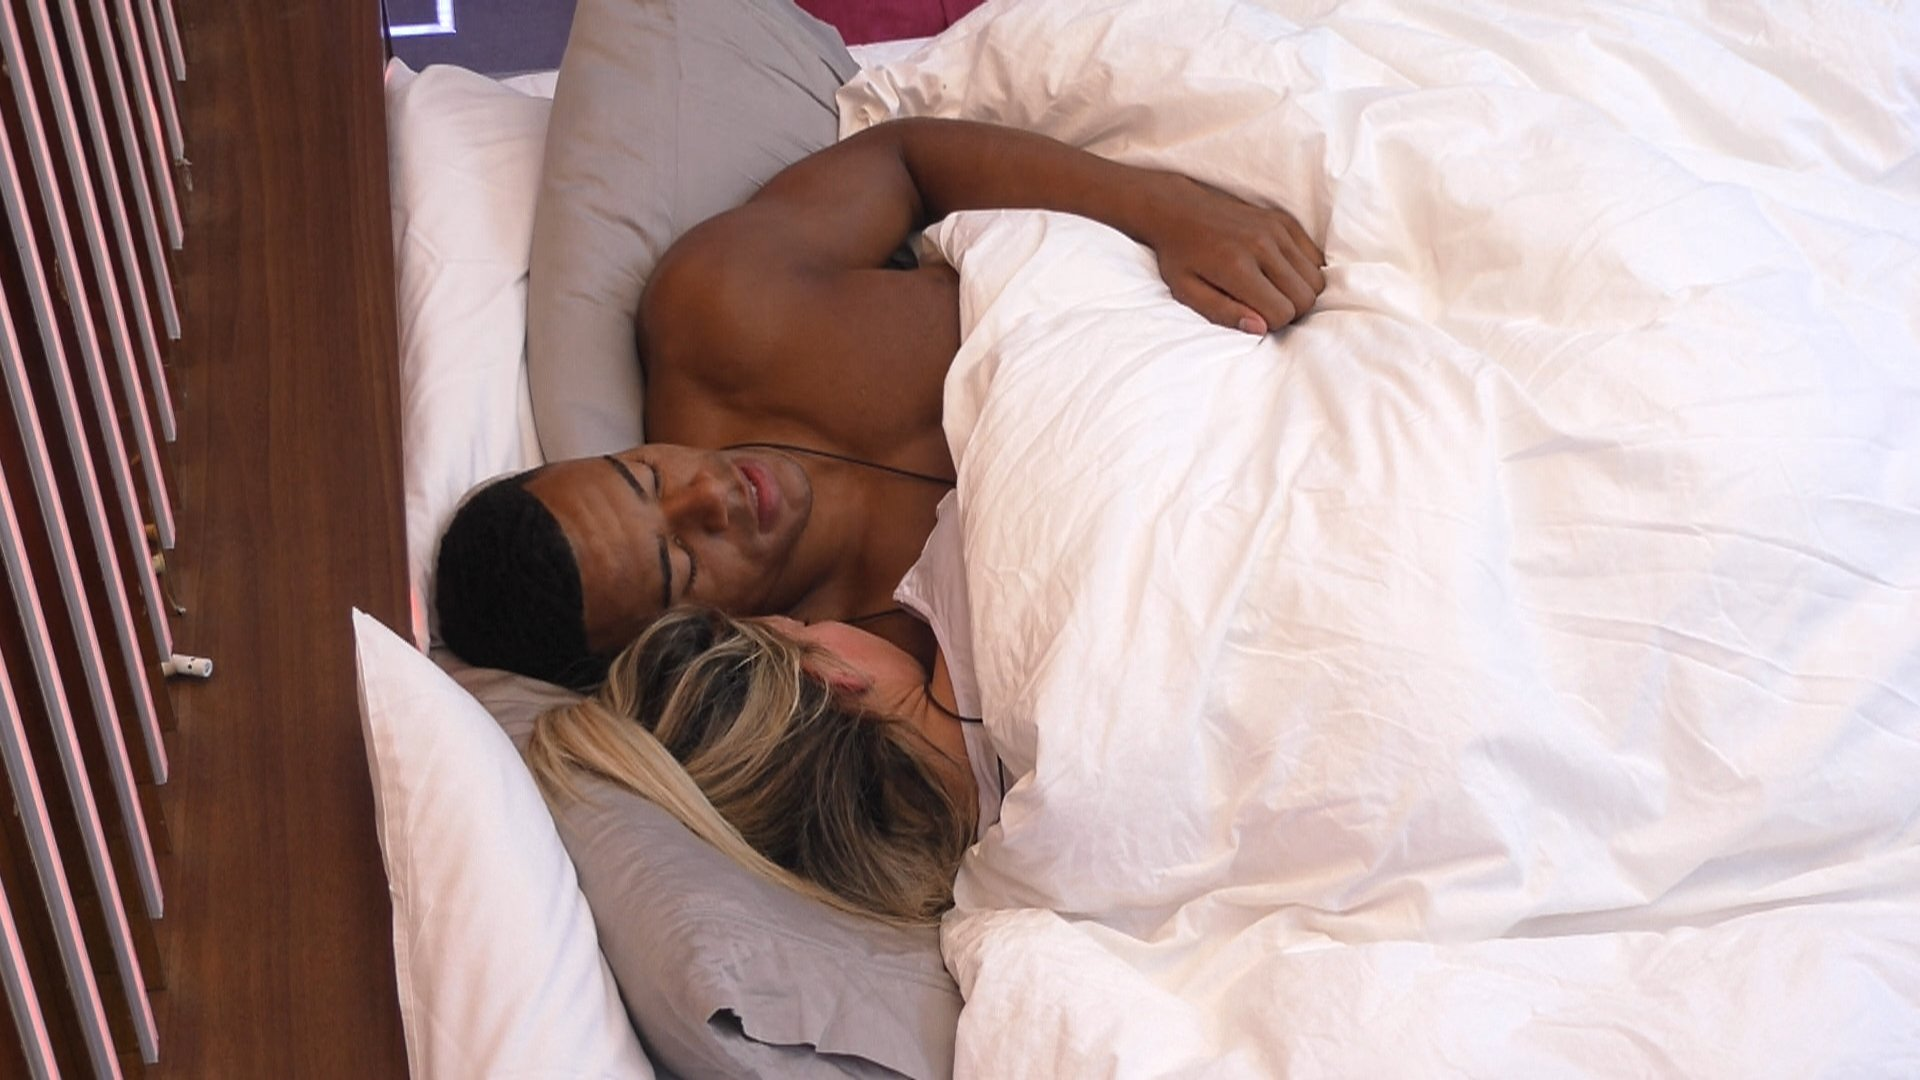 Love Island bosses 'cutting sex scenes so show cannot be compared to Geordie Shore'